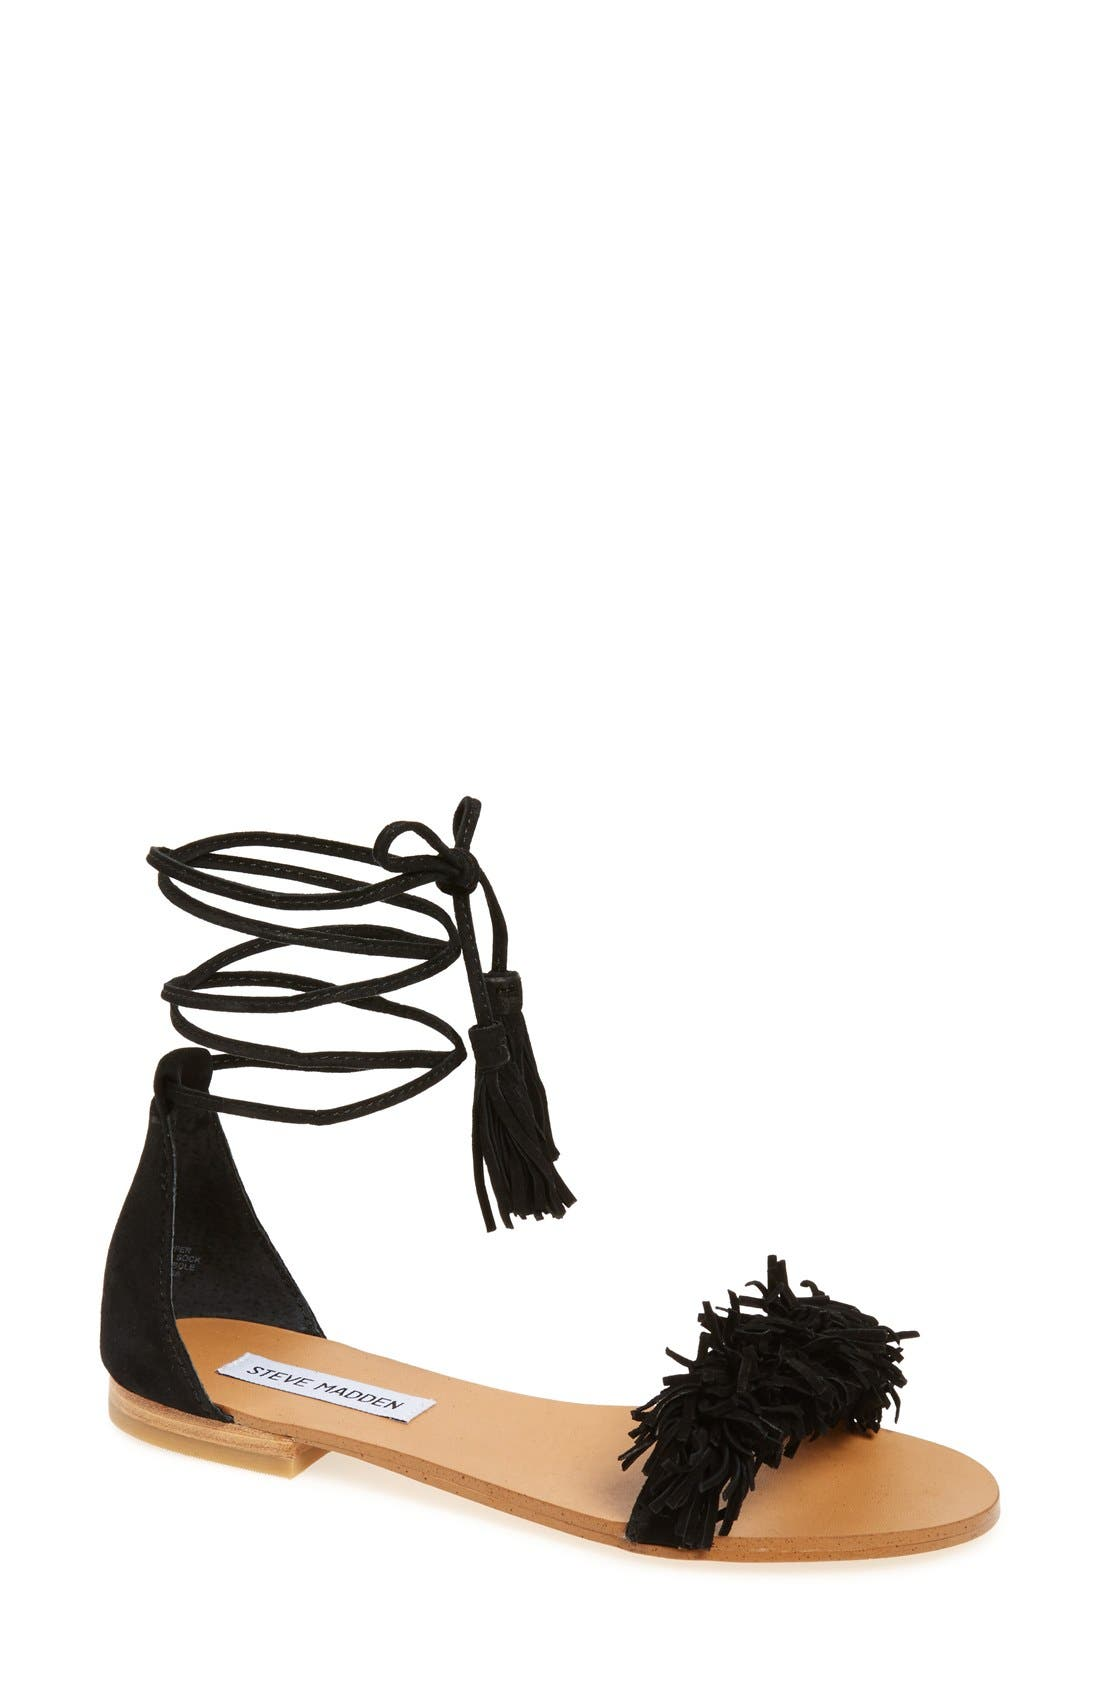 'Sweetyy' Lace-Up Sandal,                         Main,                         color, 006